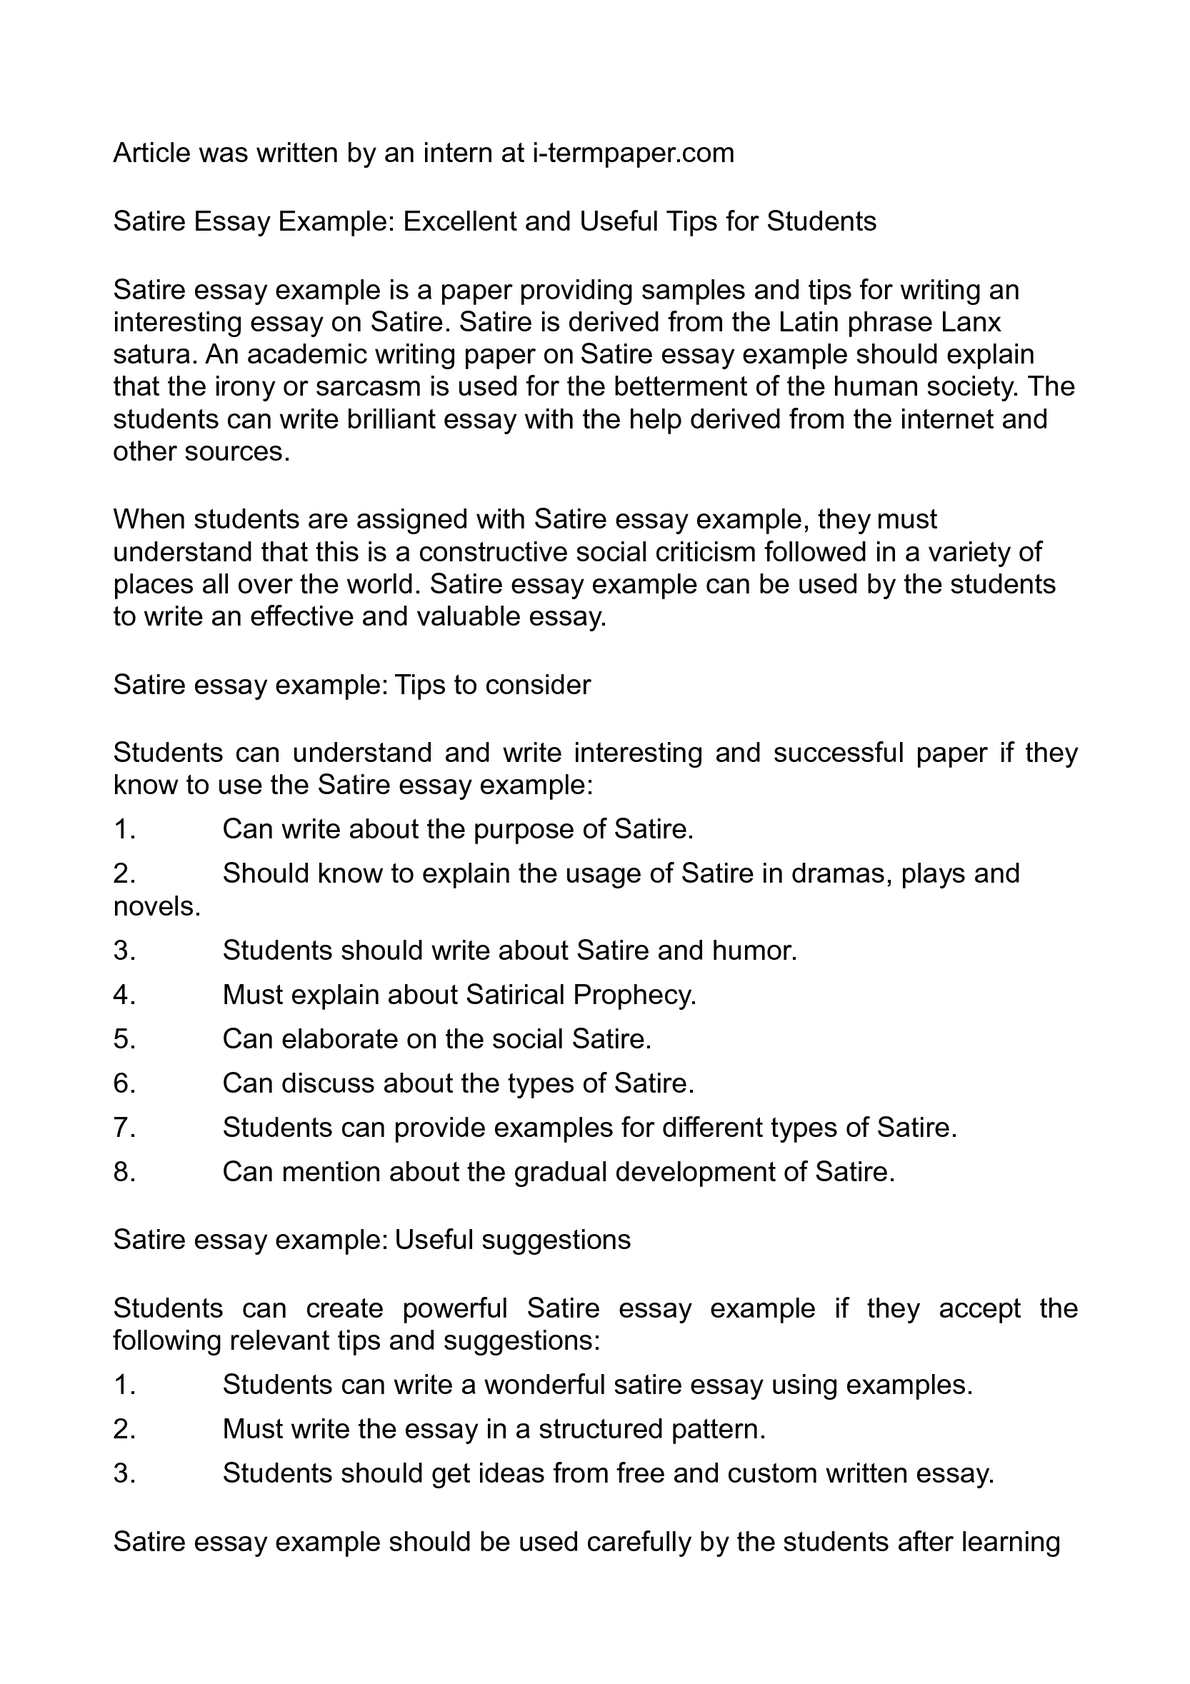 satire essay satire essay examples examples of satirical essays ...